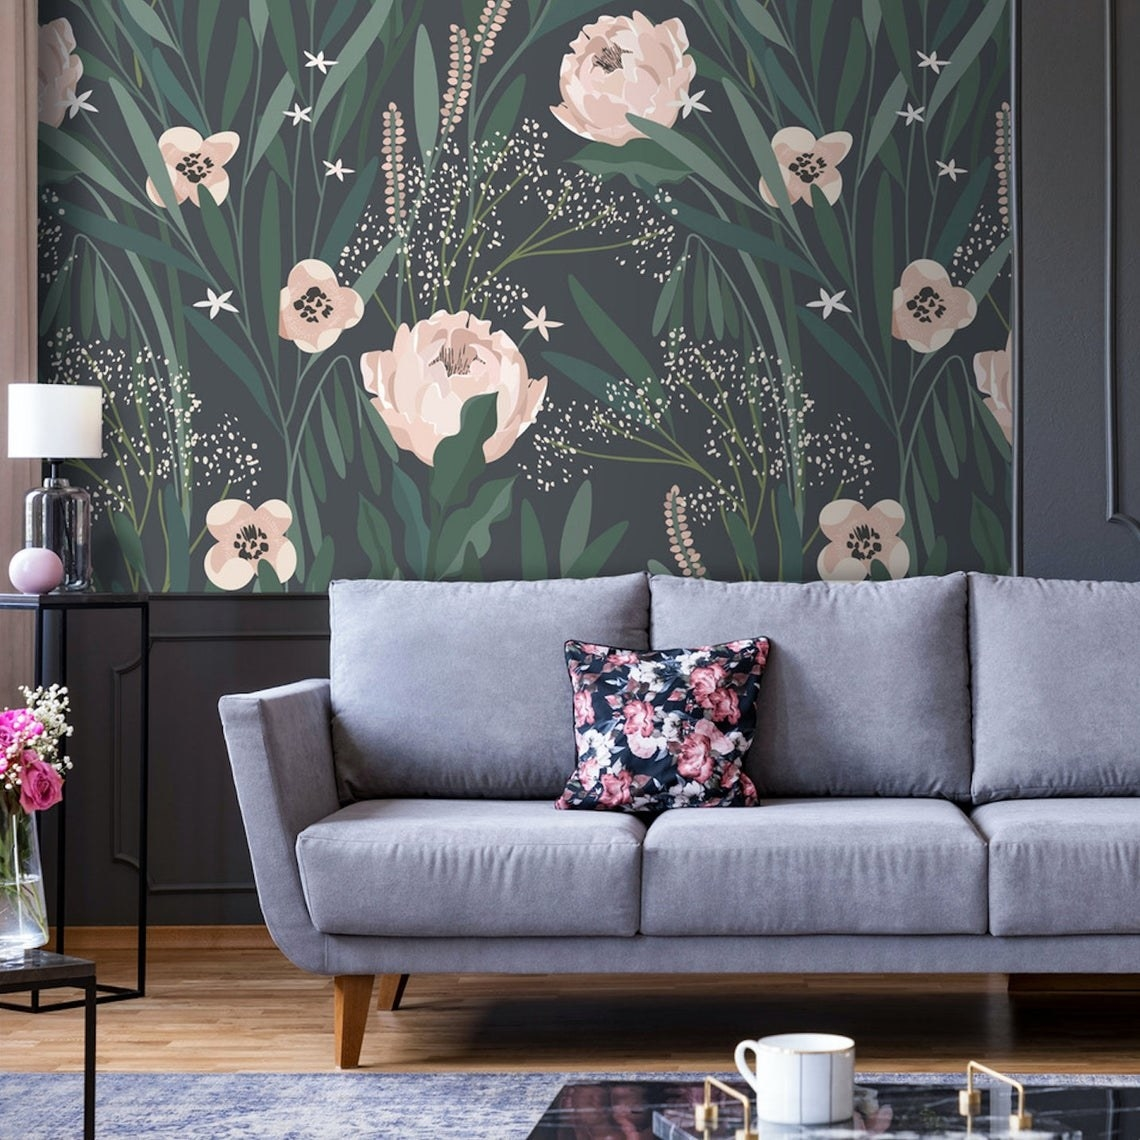 The wall behind a couch covered in the floral wallpaper